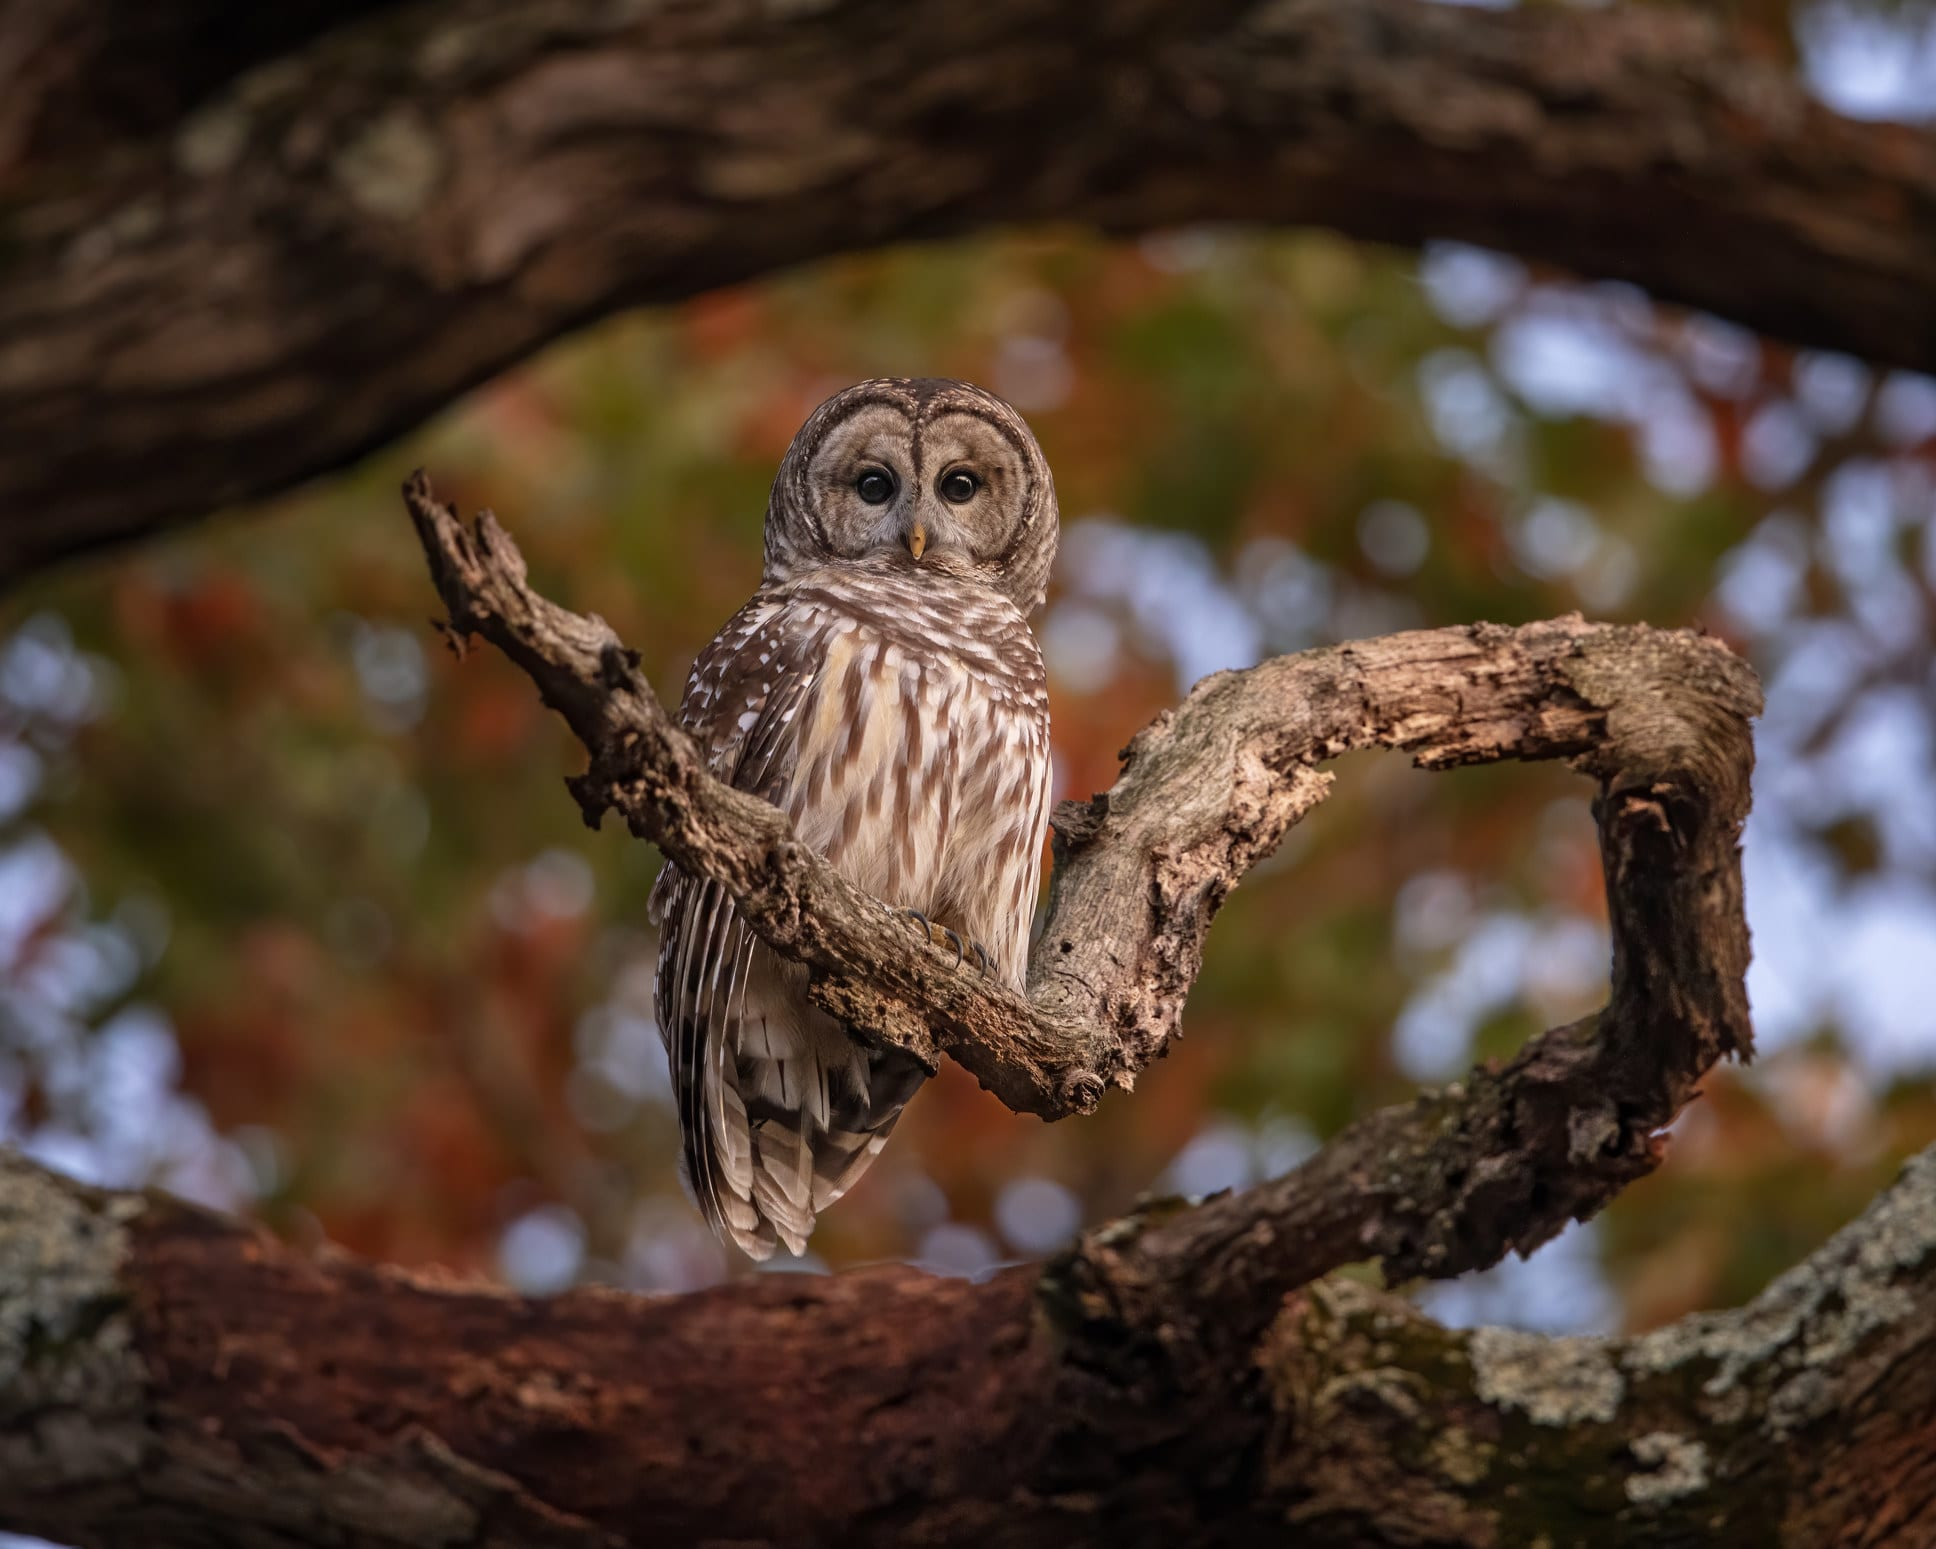 An owl perched on a tree